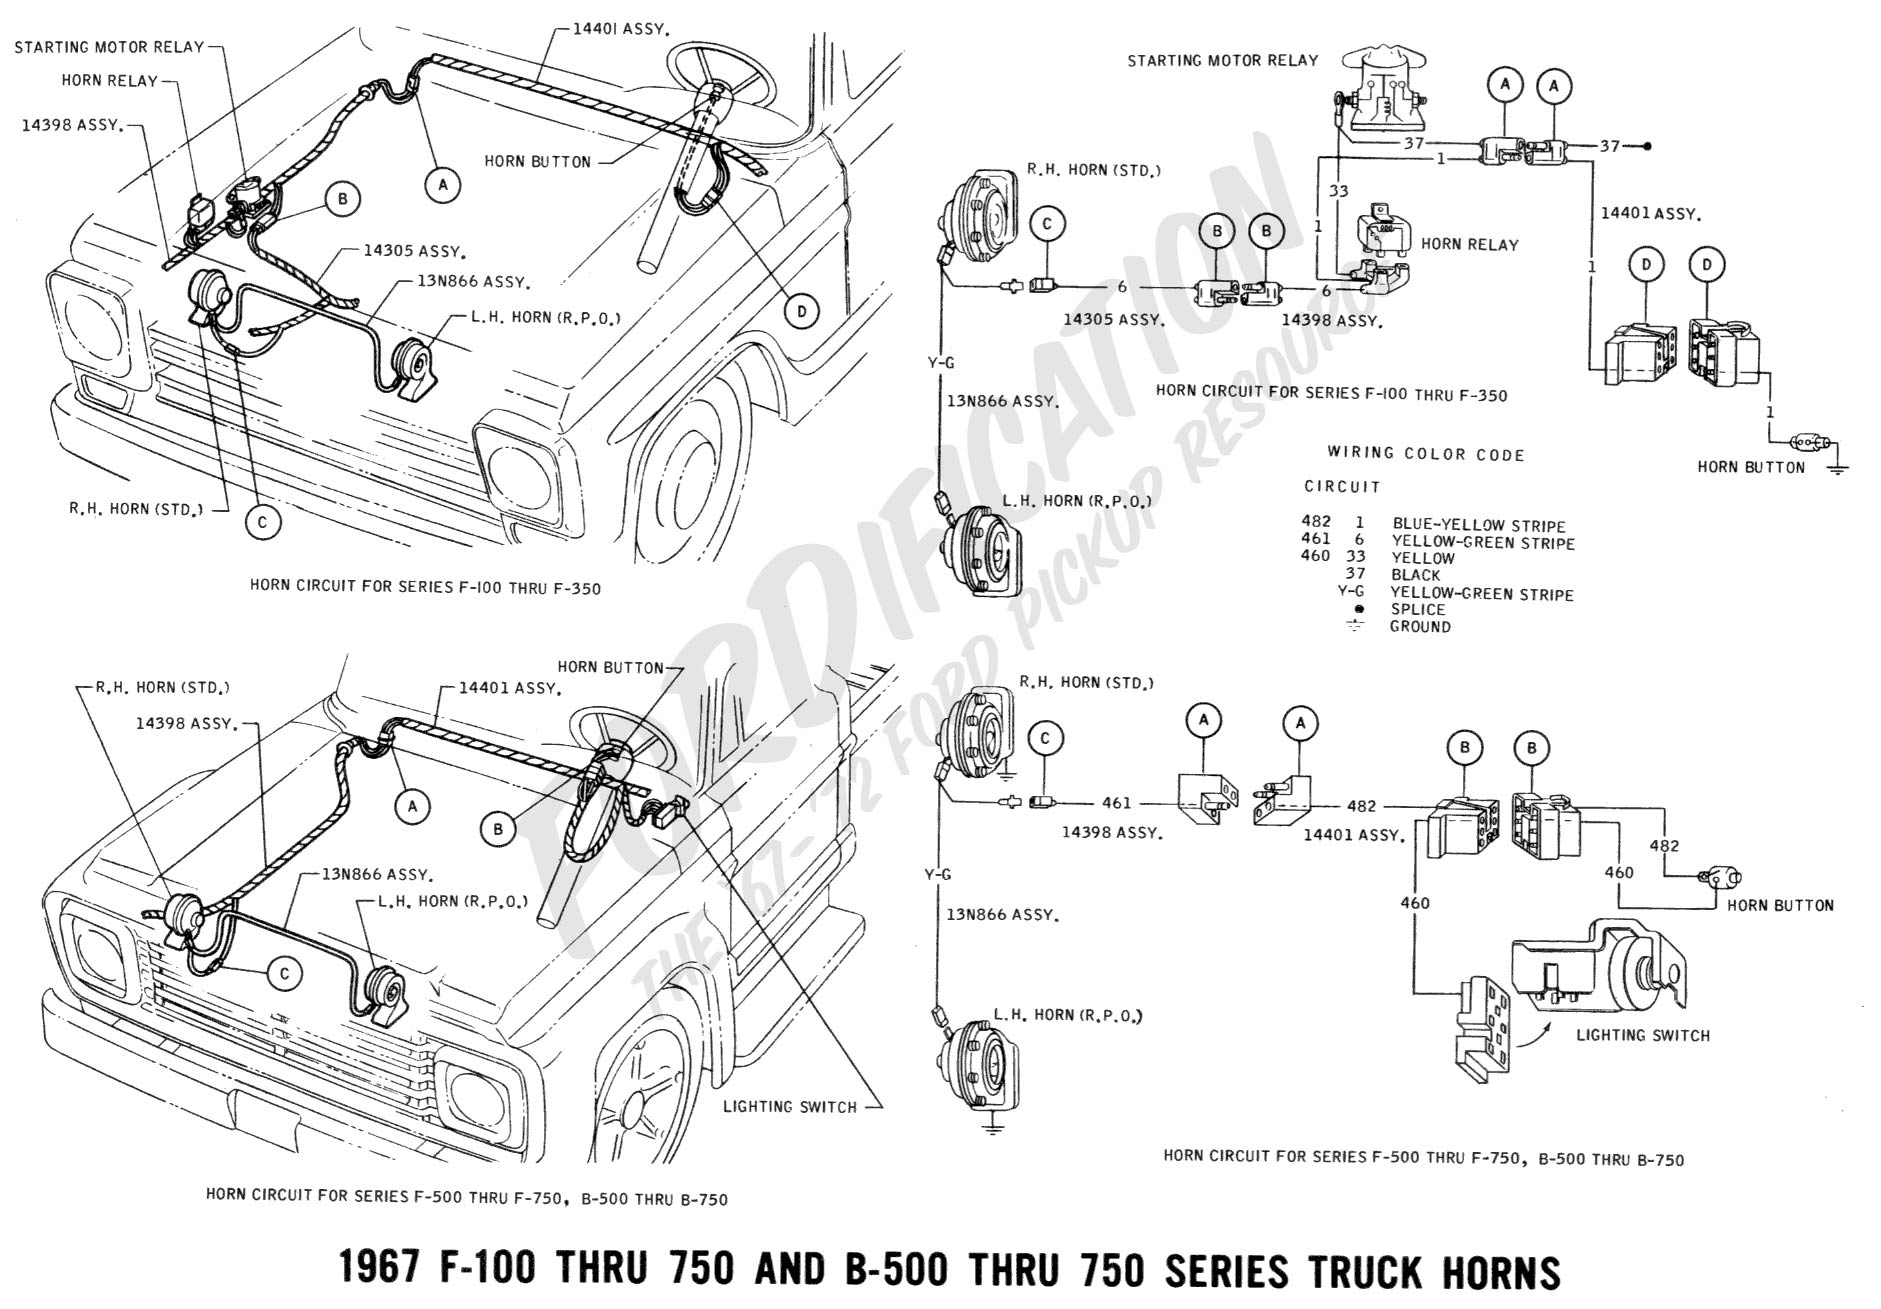 Ford truck technical drawings and schematics section h wiring 1967 f 100 thru f 750 b 500 thru 750 horn cheapraybanclubmaster Gallery